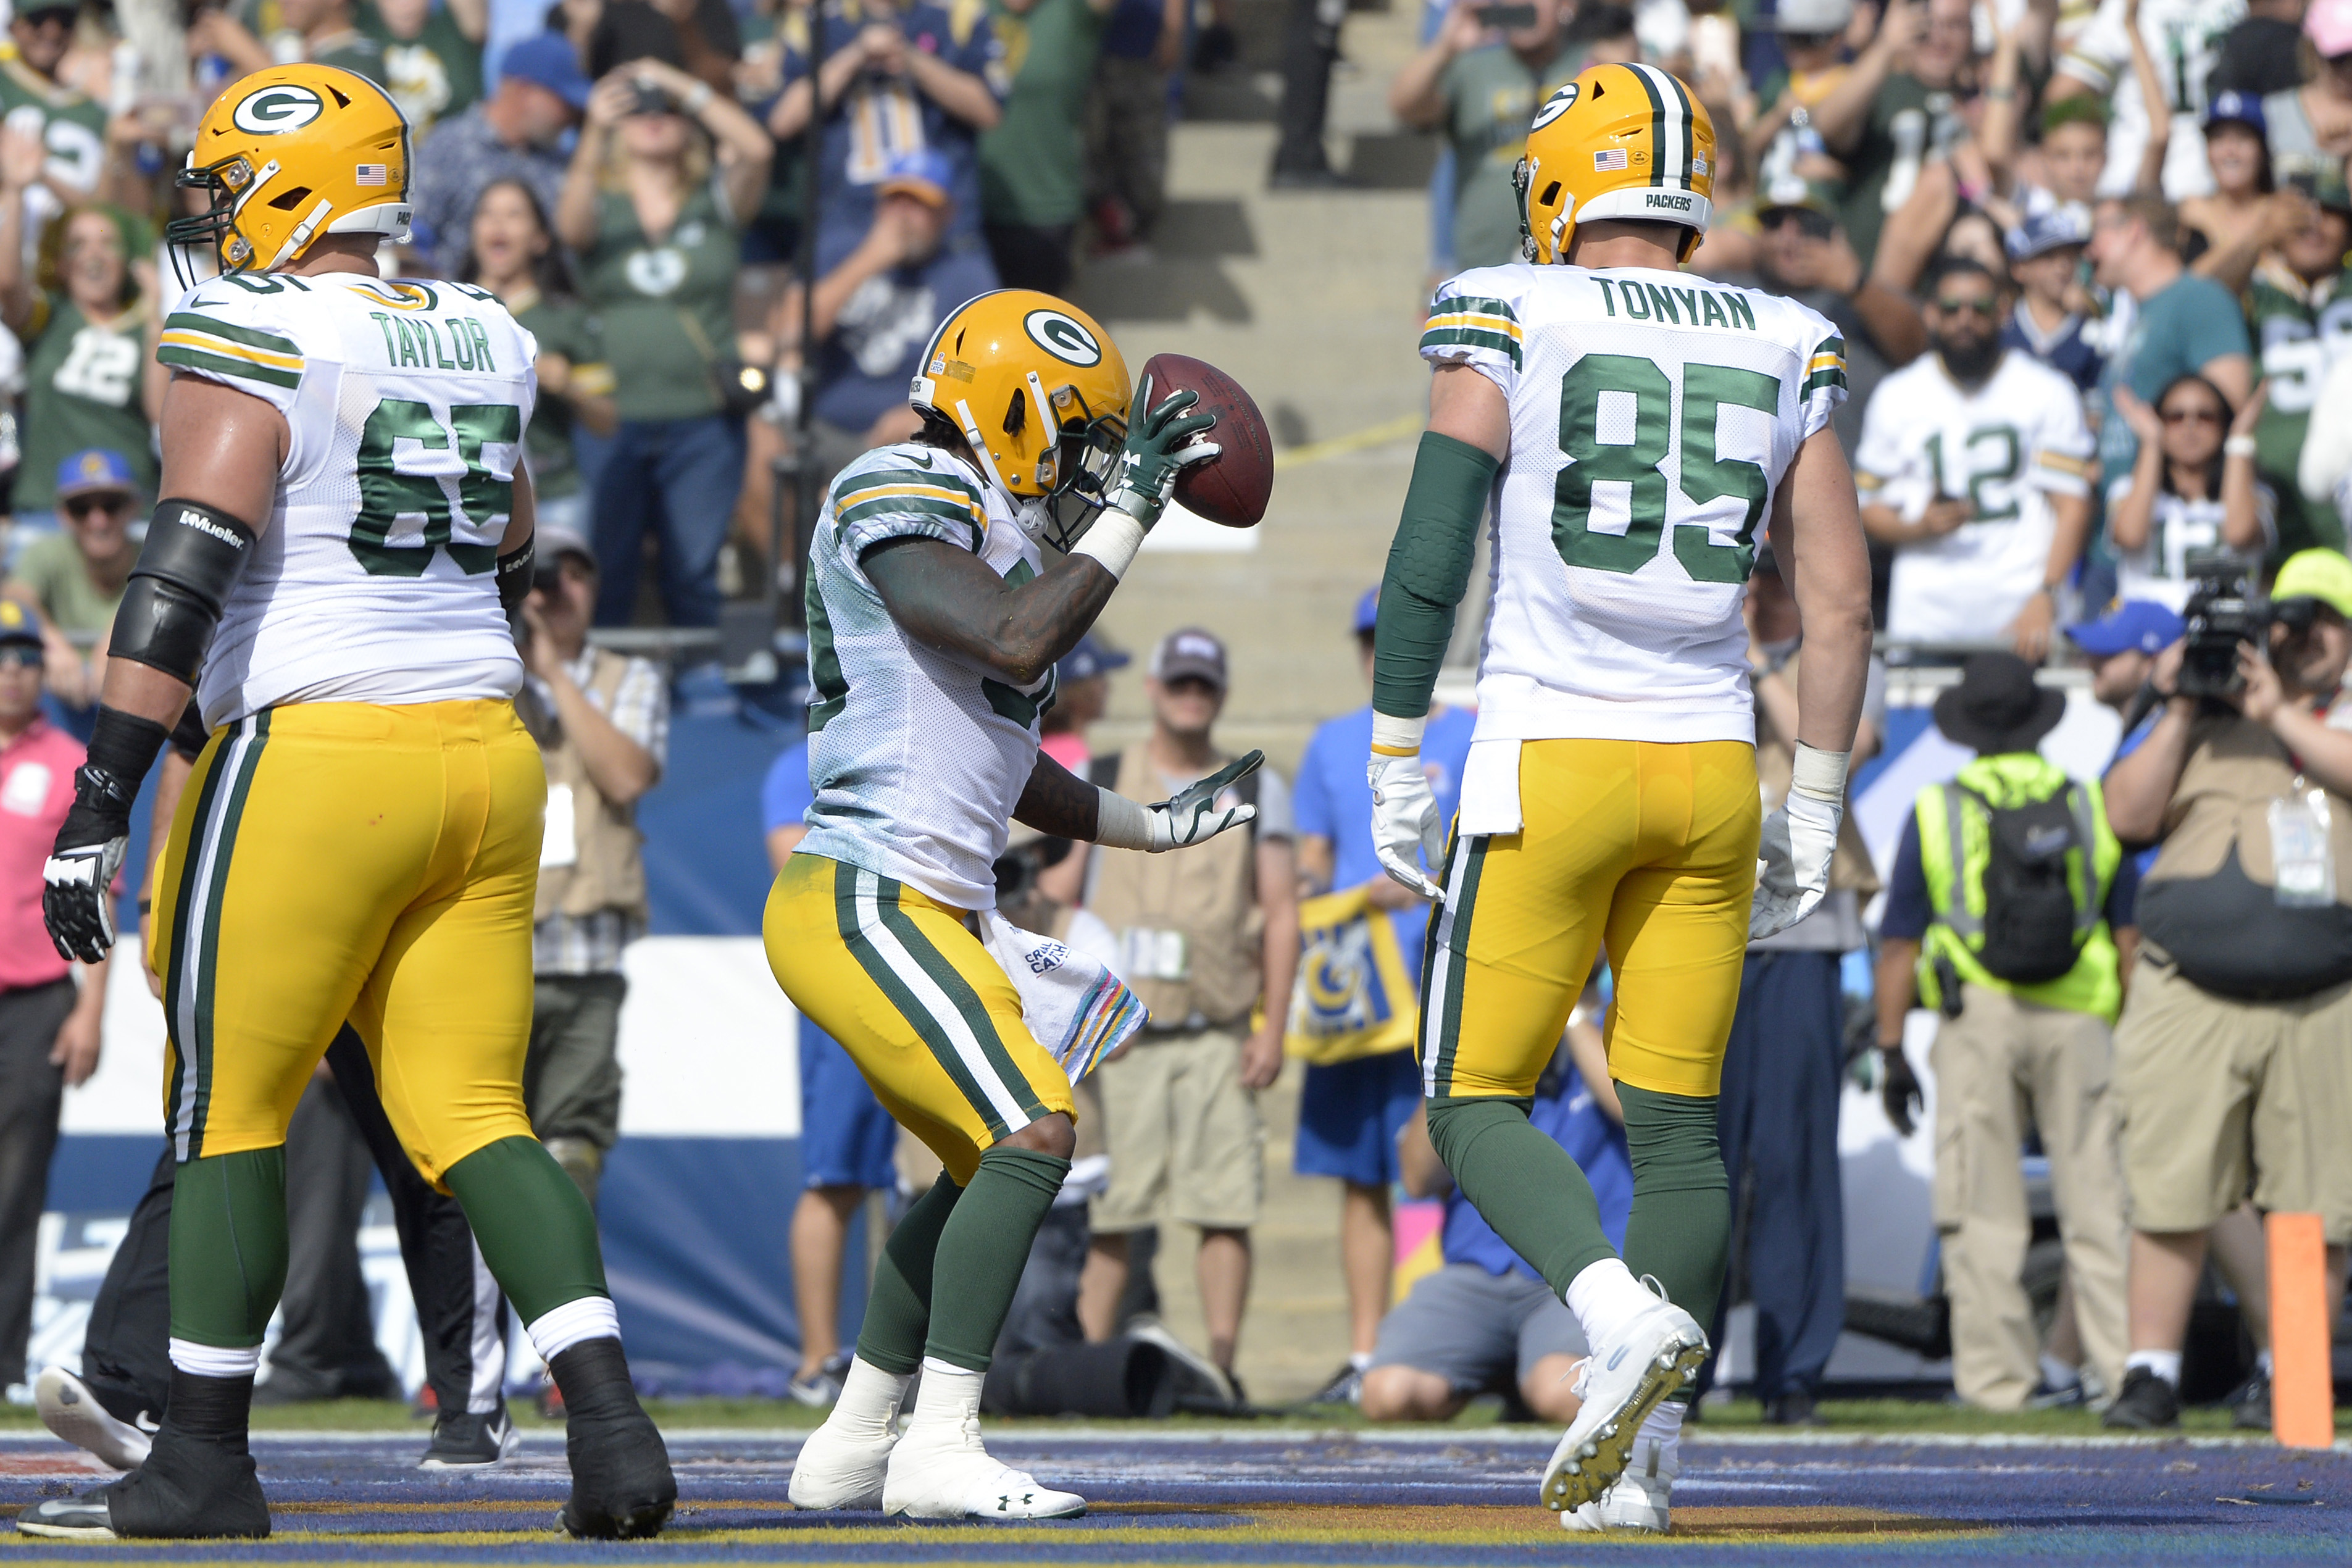 Oct 28, 2018; Los Angeles, CA, USA; Green Bay Packers running back Jamaal Williams (center) celebrates a first quarter touchdown  against the Los Angeles Rams at Los Angeles Memorial Coliseum. Mandatory Credit: Jake Roth-USA TODAY Sports